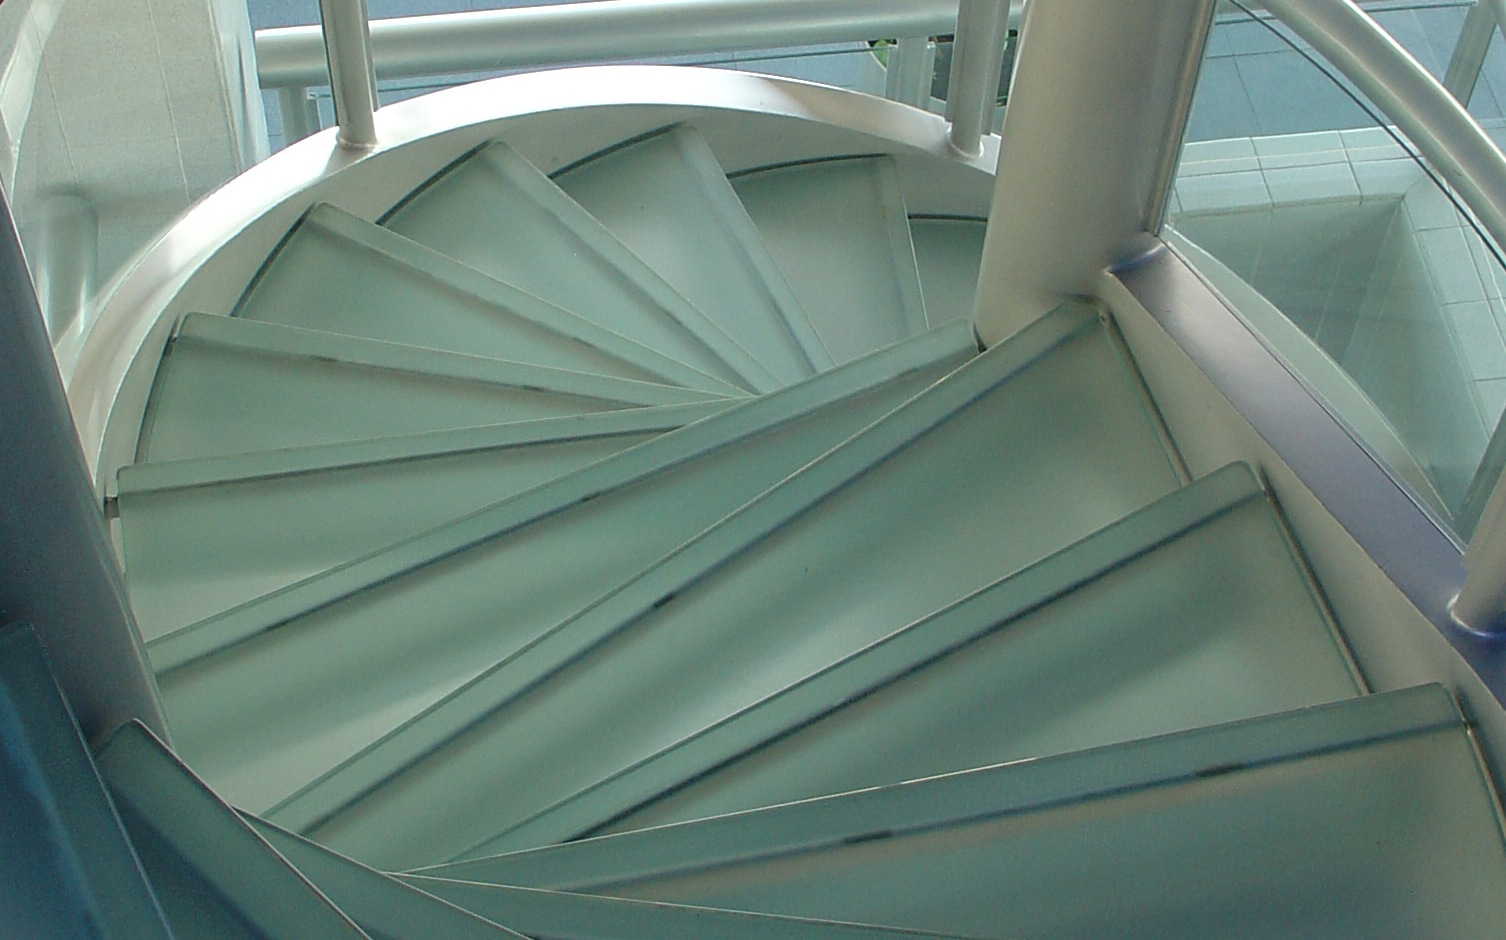 Circular Stairs With Glass Treads   Textured Glass Pavers   HDG Building  Materials